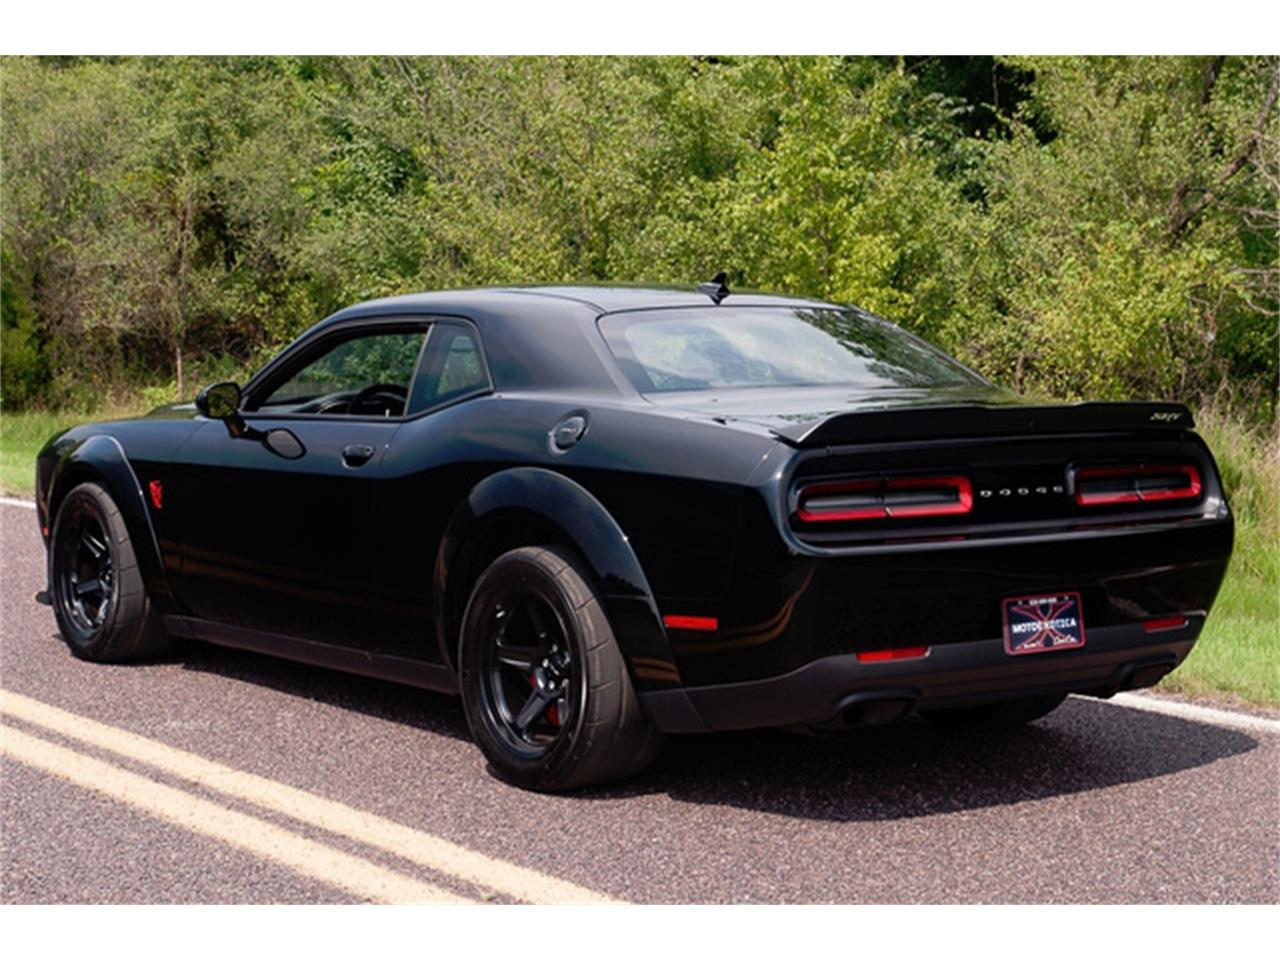 2018 Dodge Challenger (CC-1256656) for sale in St. Louis, Missouri